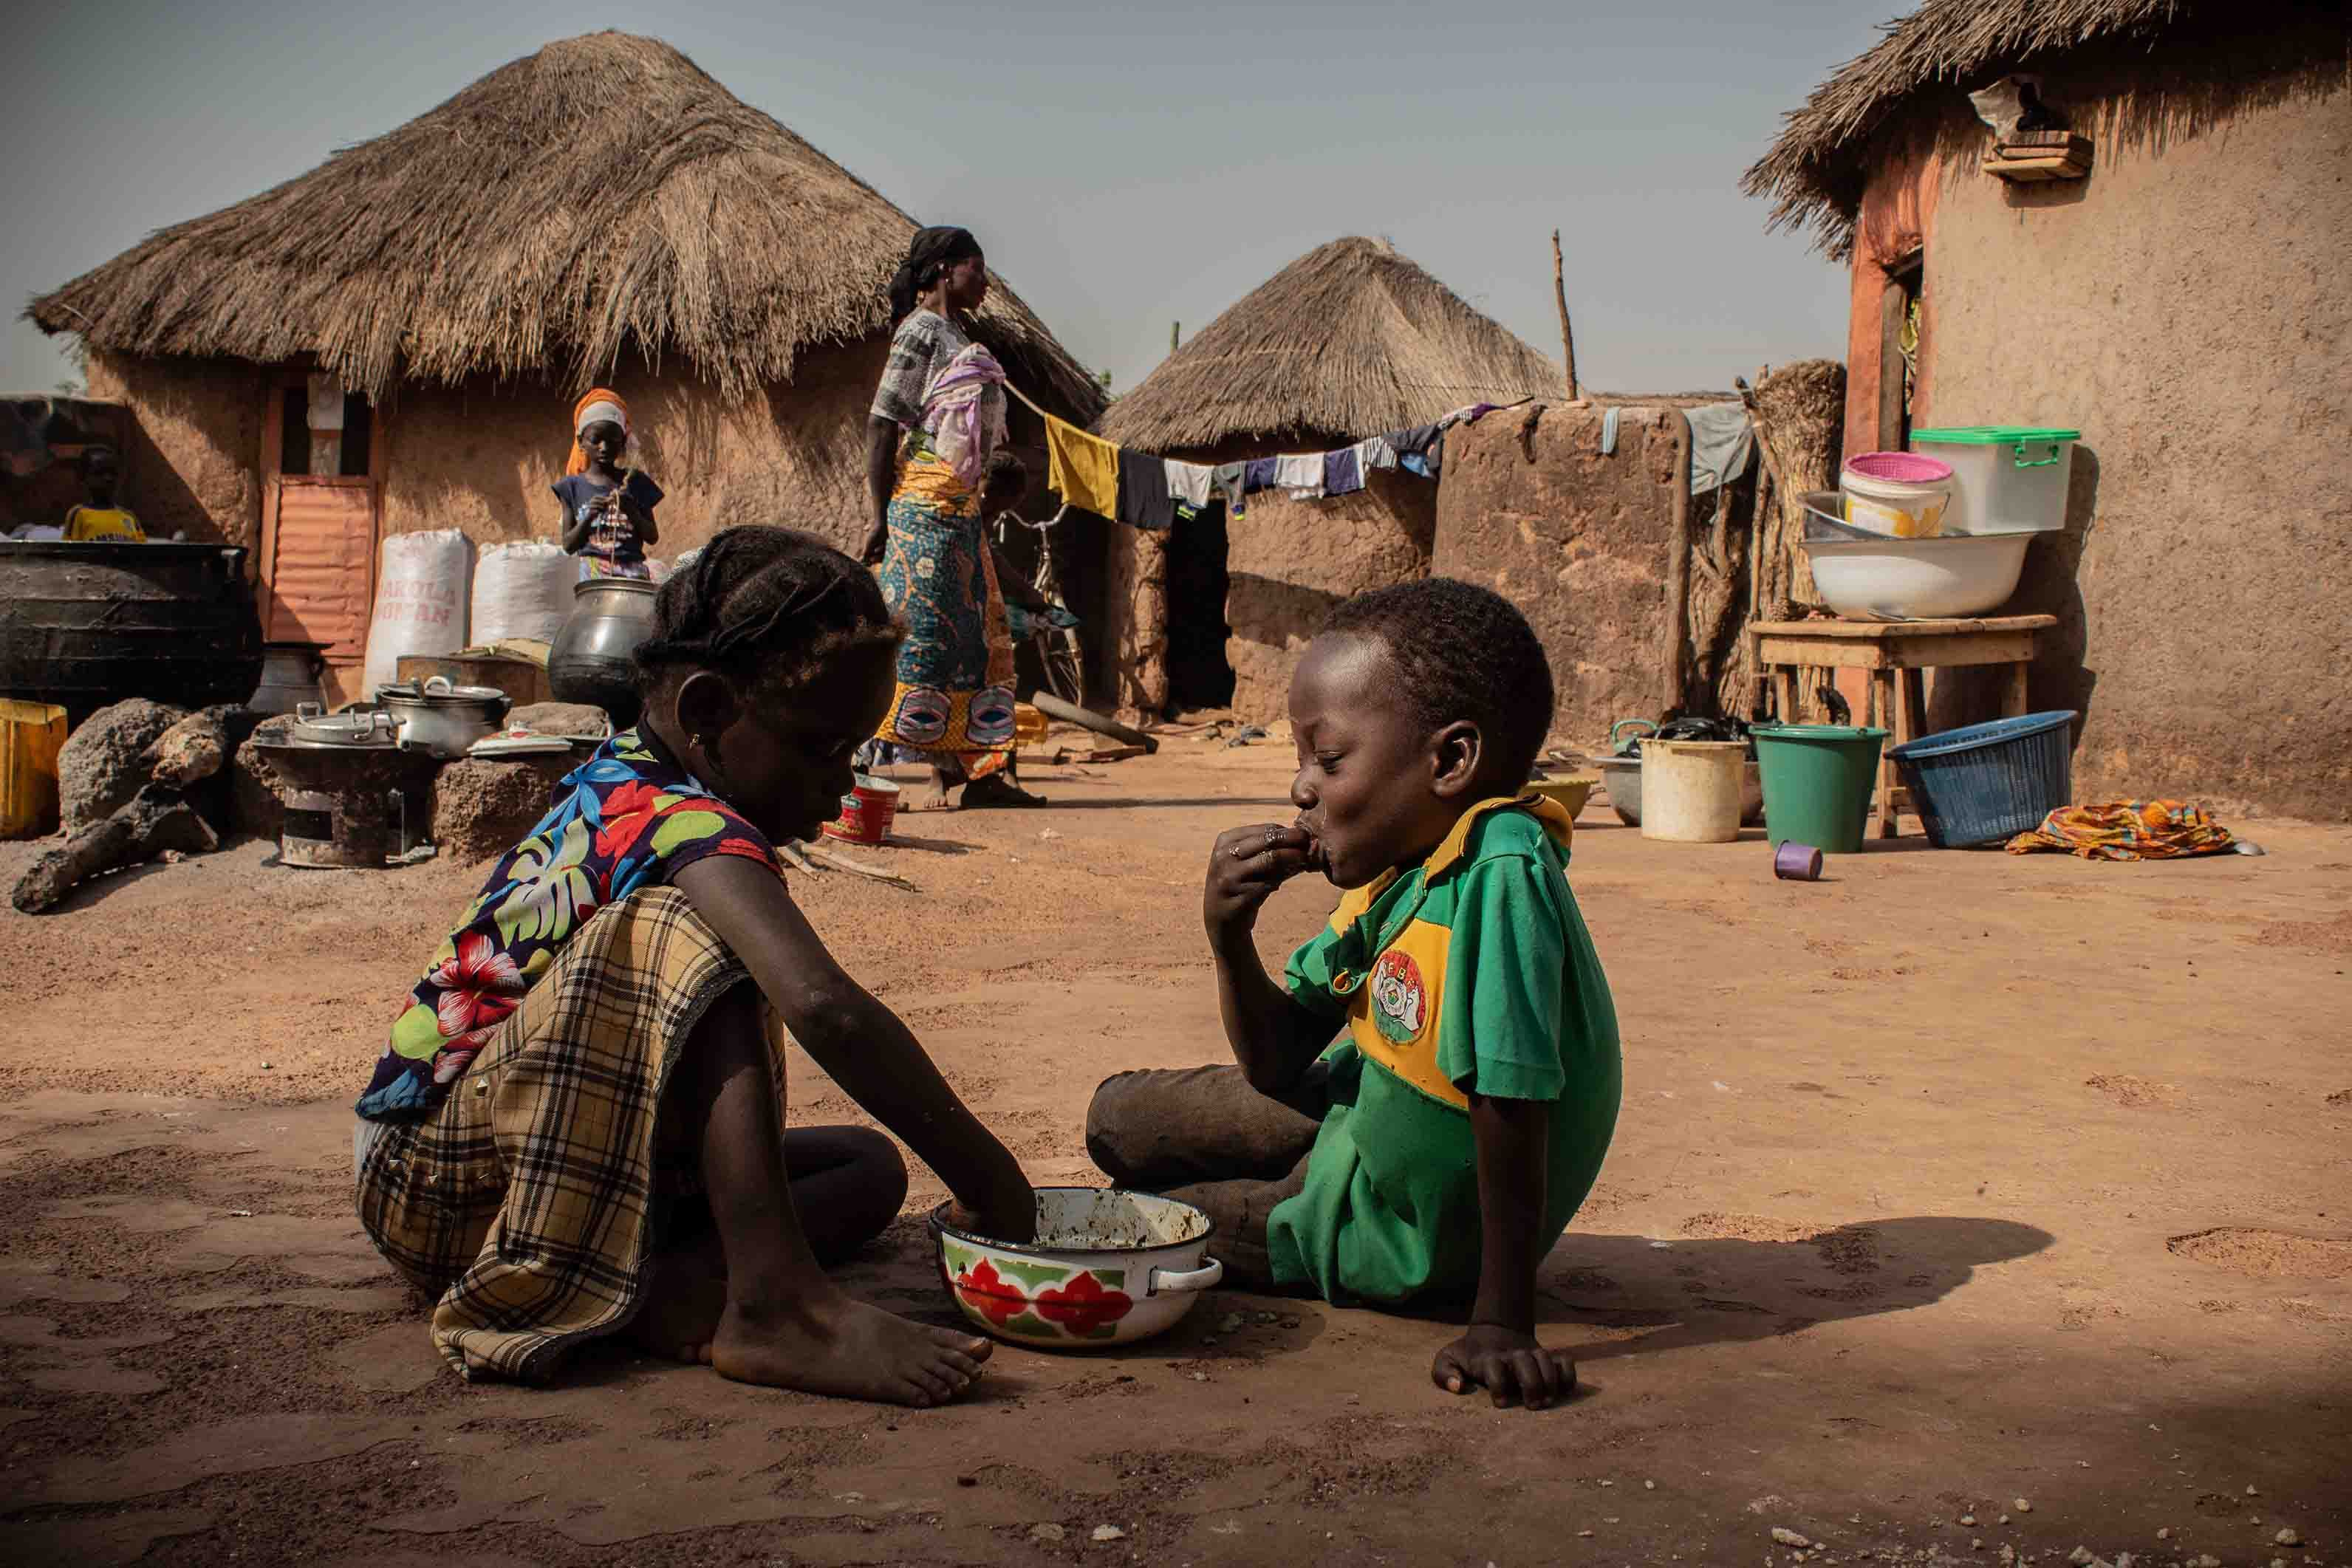 Children in Alimatu Alidu's household, shown here, enjoy a dish made from cowpea. Image by Ankur Paliwal. Ghana, 2019.